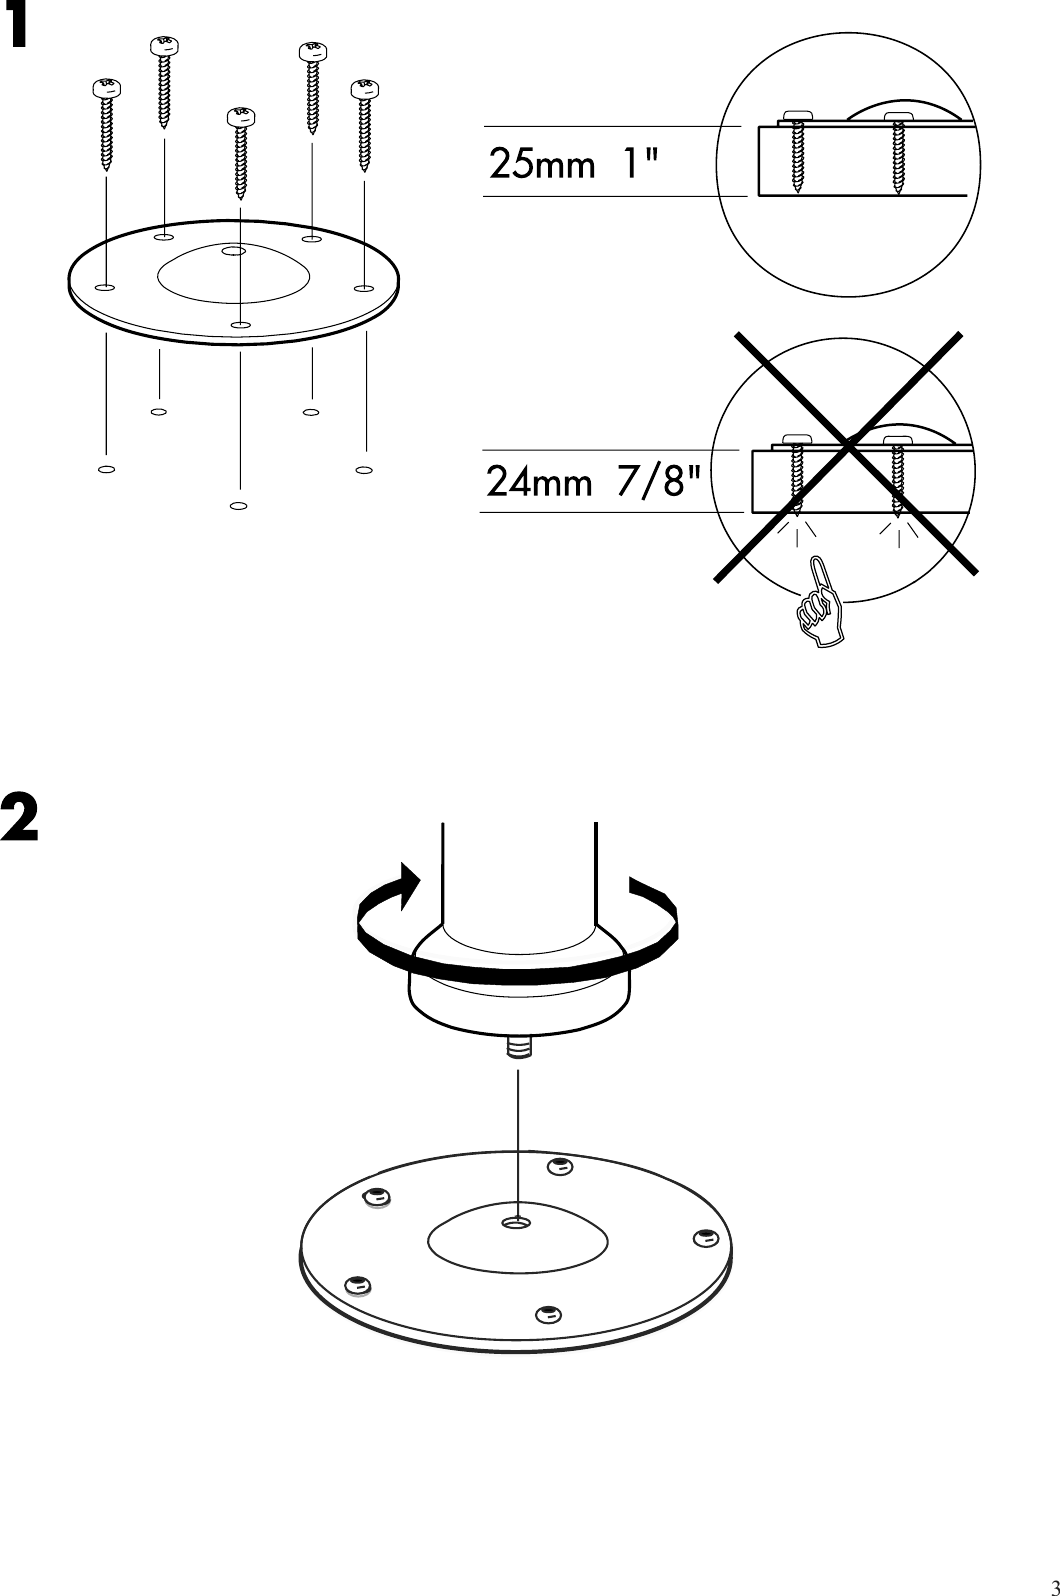 Ikea Vika Kaj Adjustable Leg Assembly Instruction